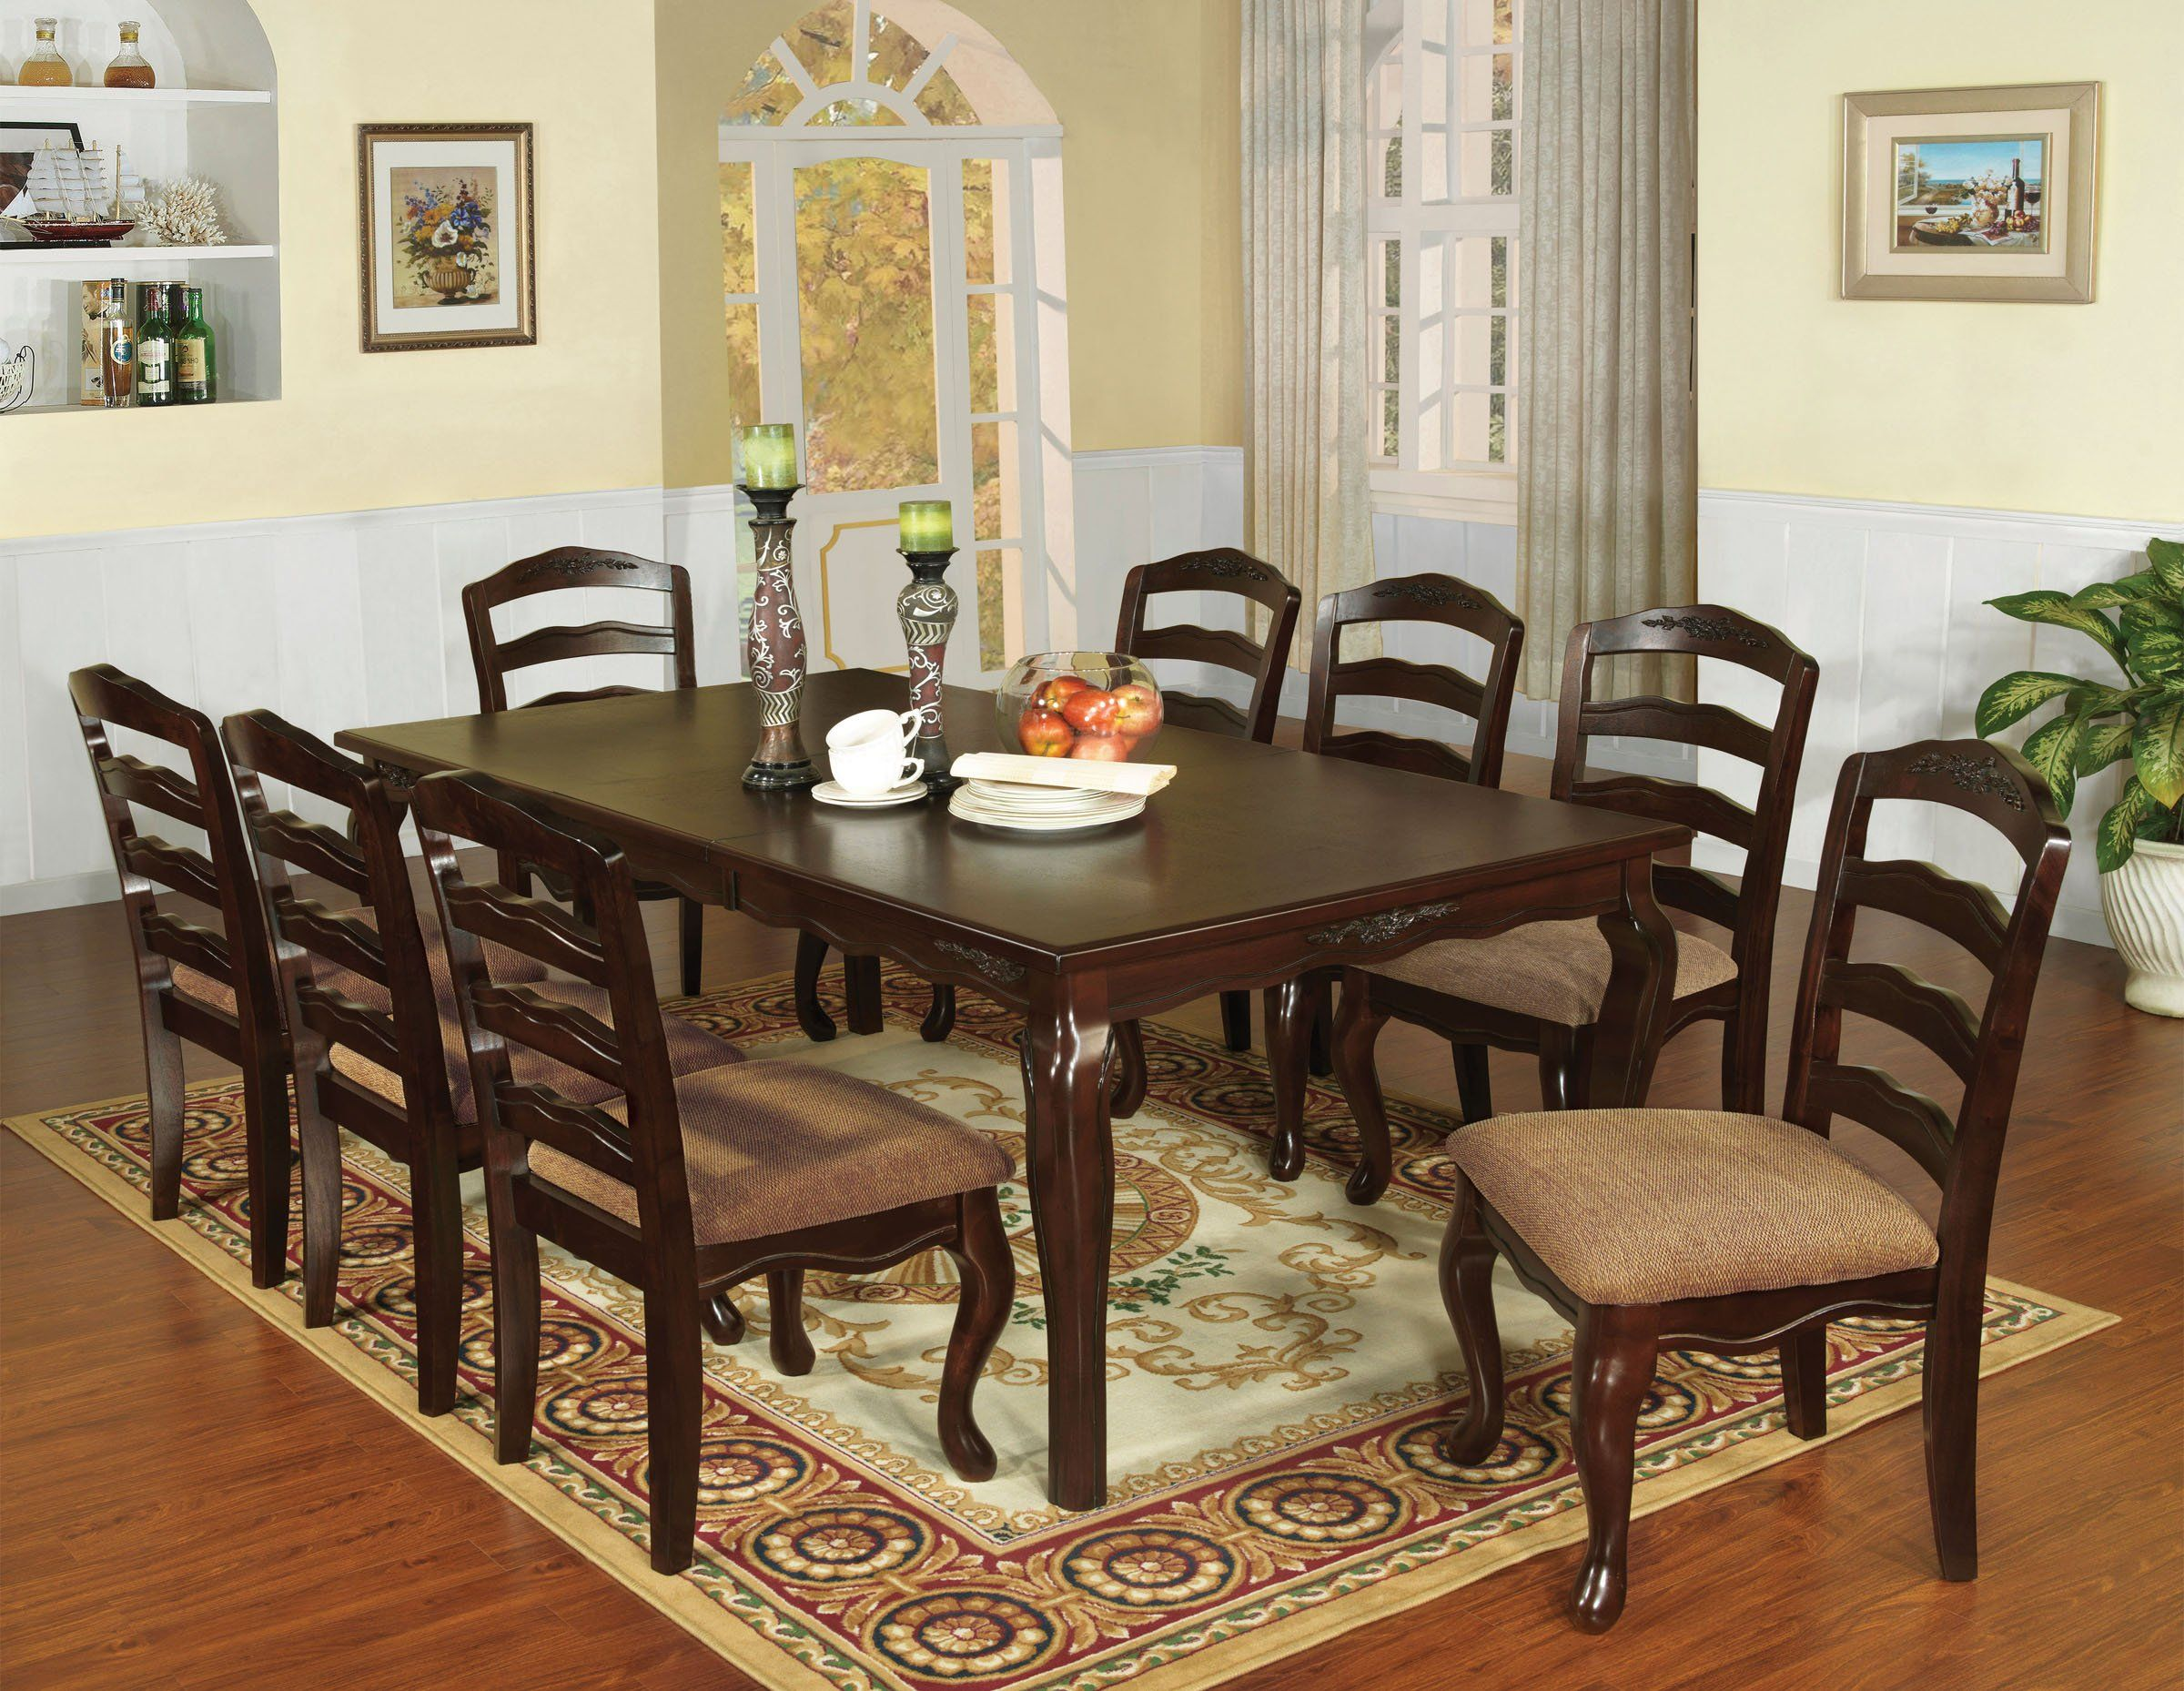 Furniture Of America Townsville Dark Walnut Wood Finish 78 Inch 9 Piece Dining Table Set Dining Room Sets Dining Table Solid Wood Dining Set